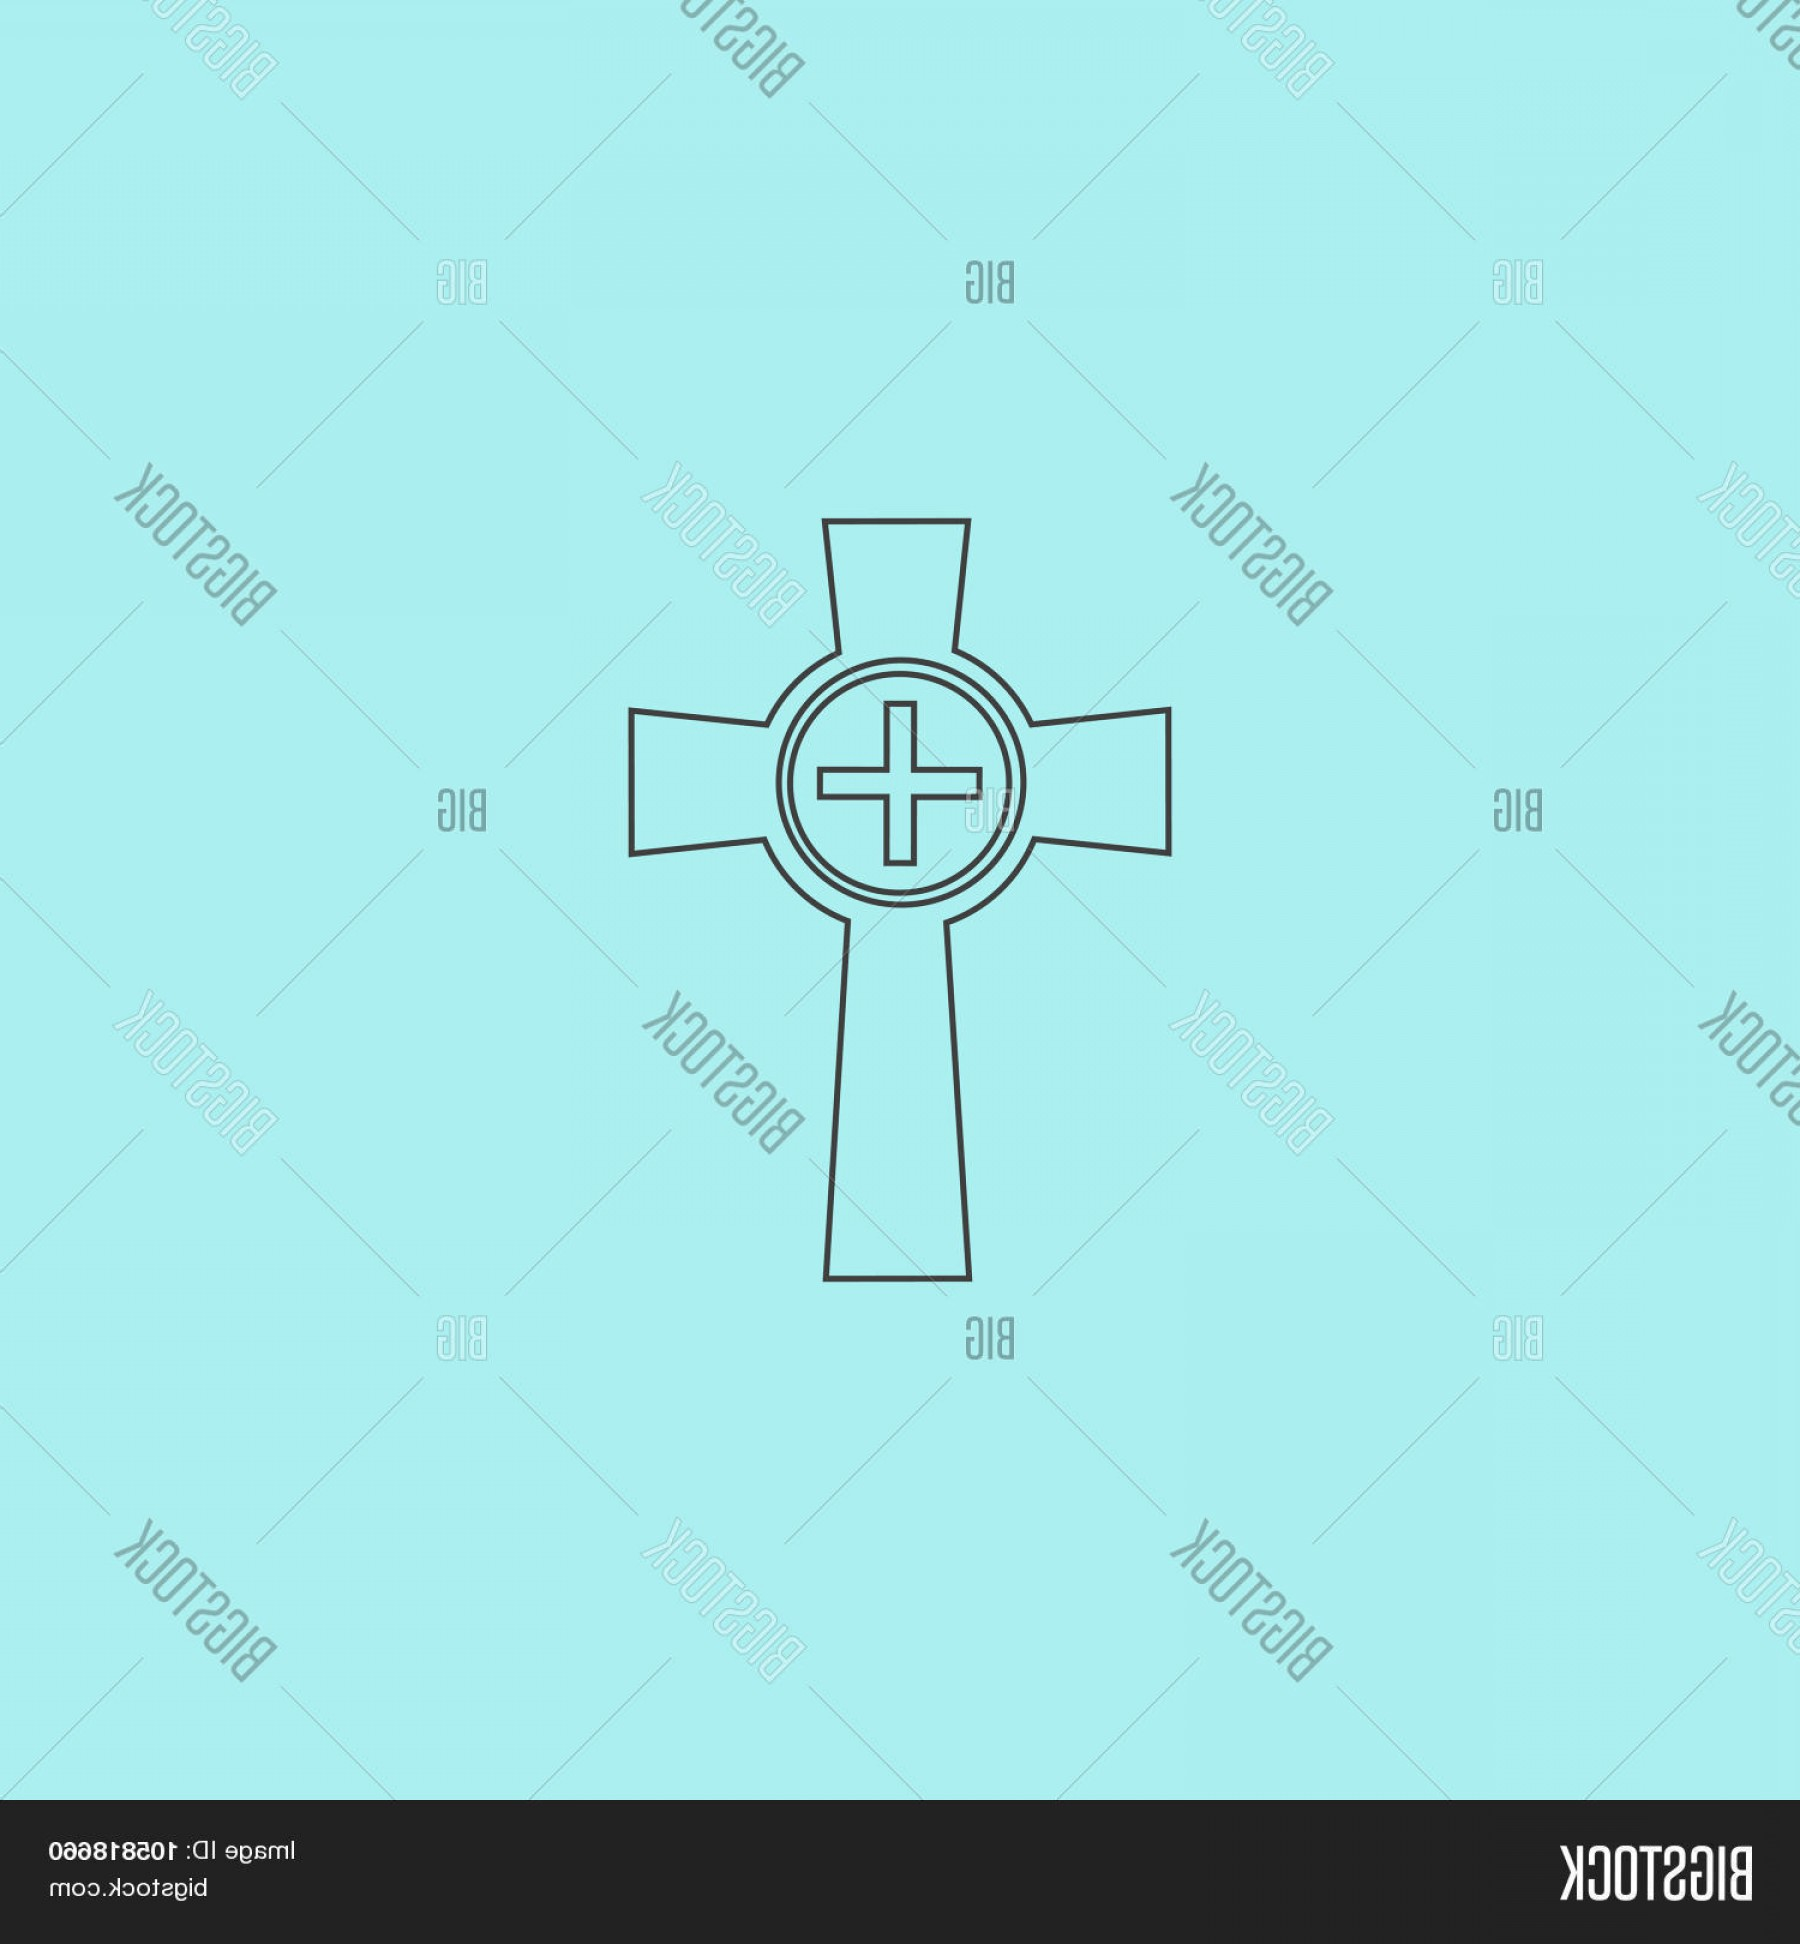 Gravestone Outline Vector: Stock Vector Tombstone Cross Gravestone Icon